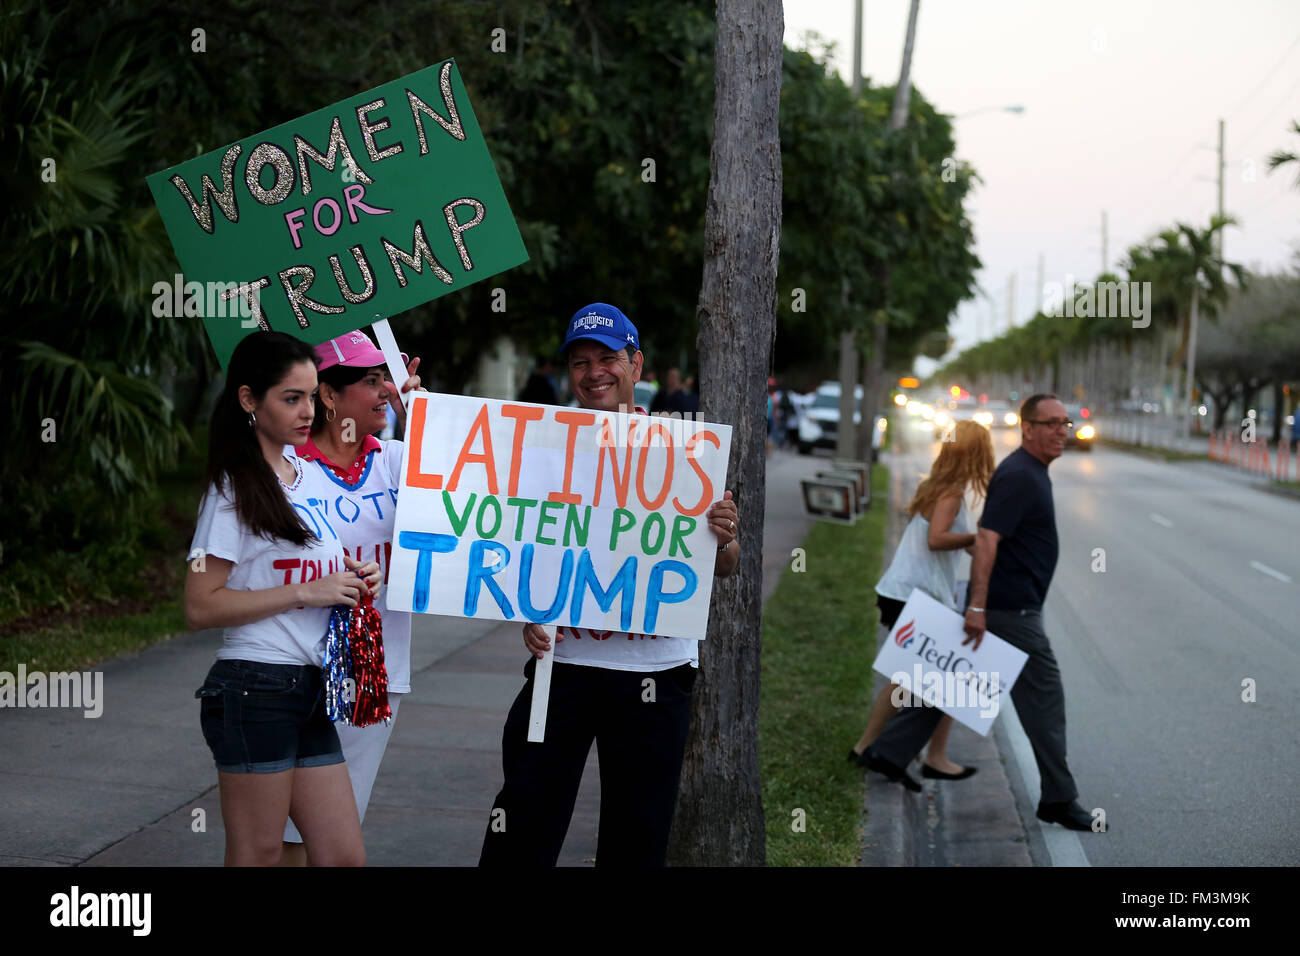 Miami, FL, USA. 10th Mar, 2016. Florida, USA - United States - Donald Trump supporters outside of the Bank United Stock Photo